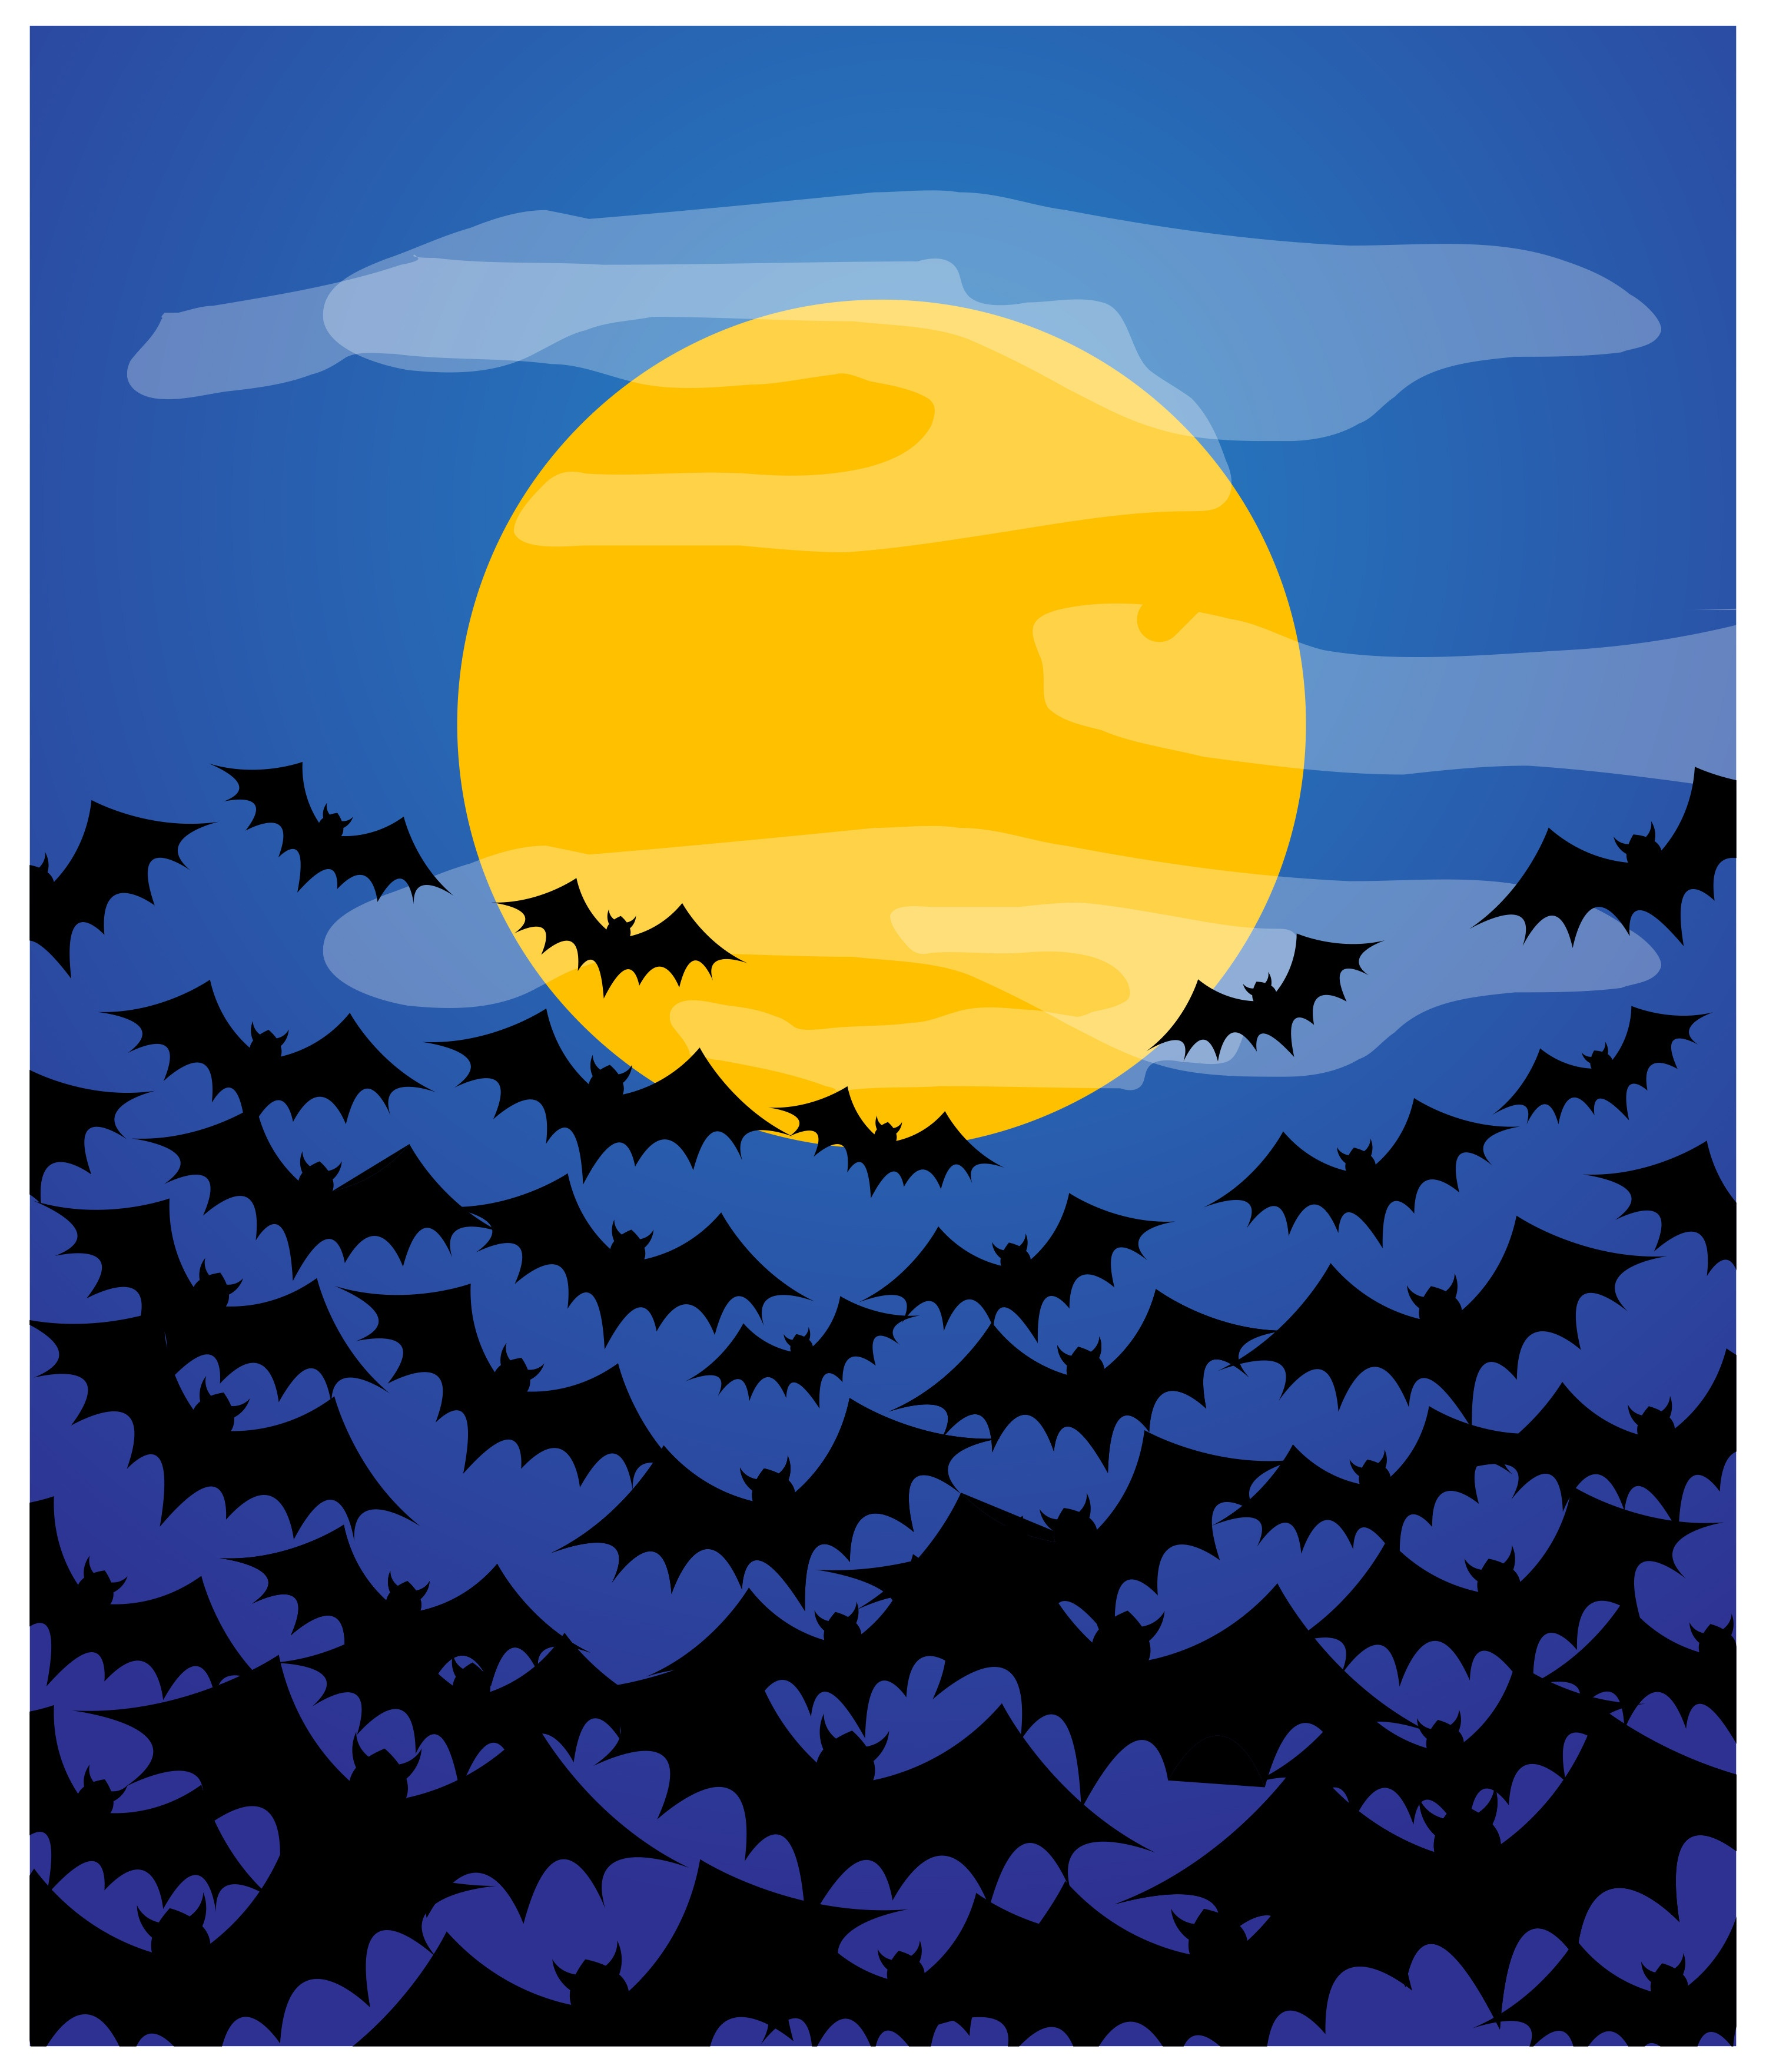 Bats Flying Over the Moon in an Article About Funding to Save the Bats